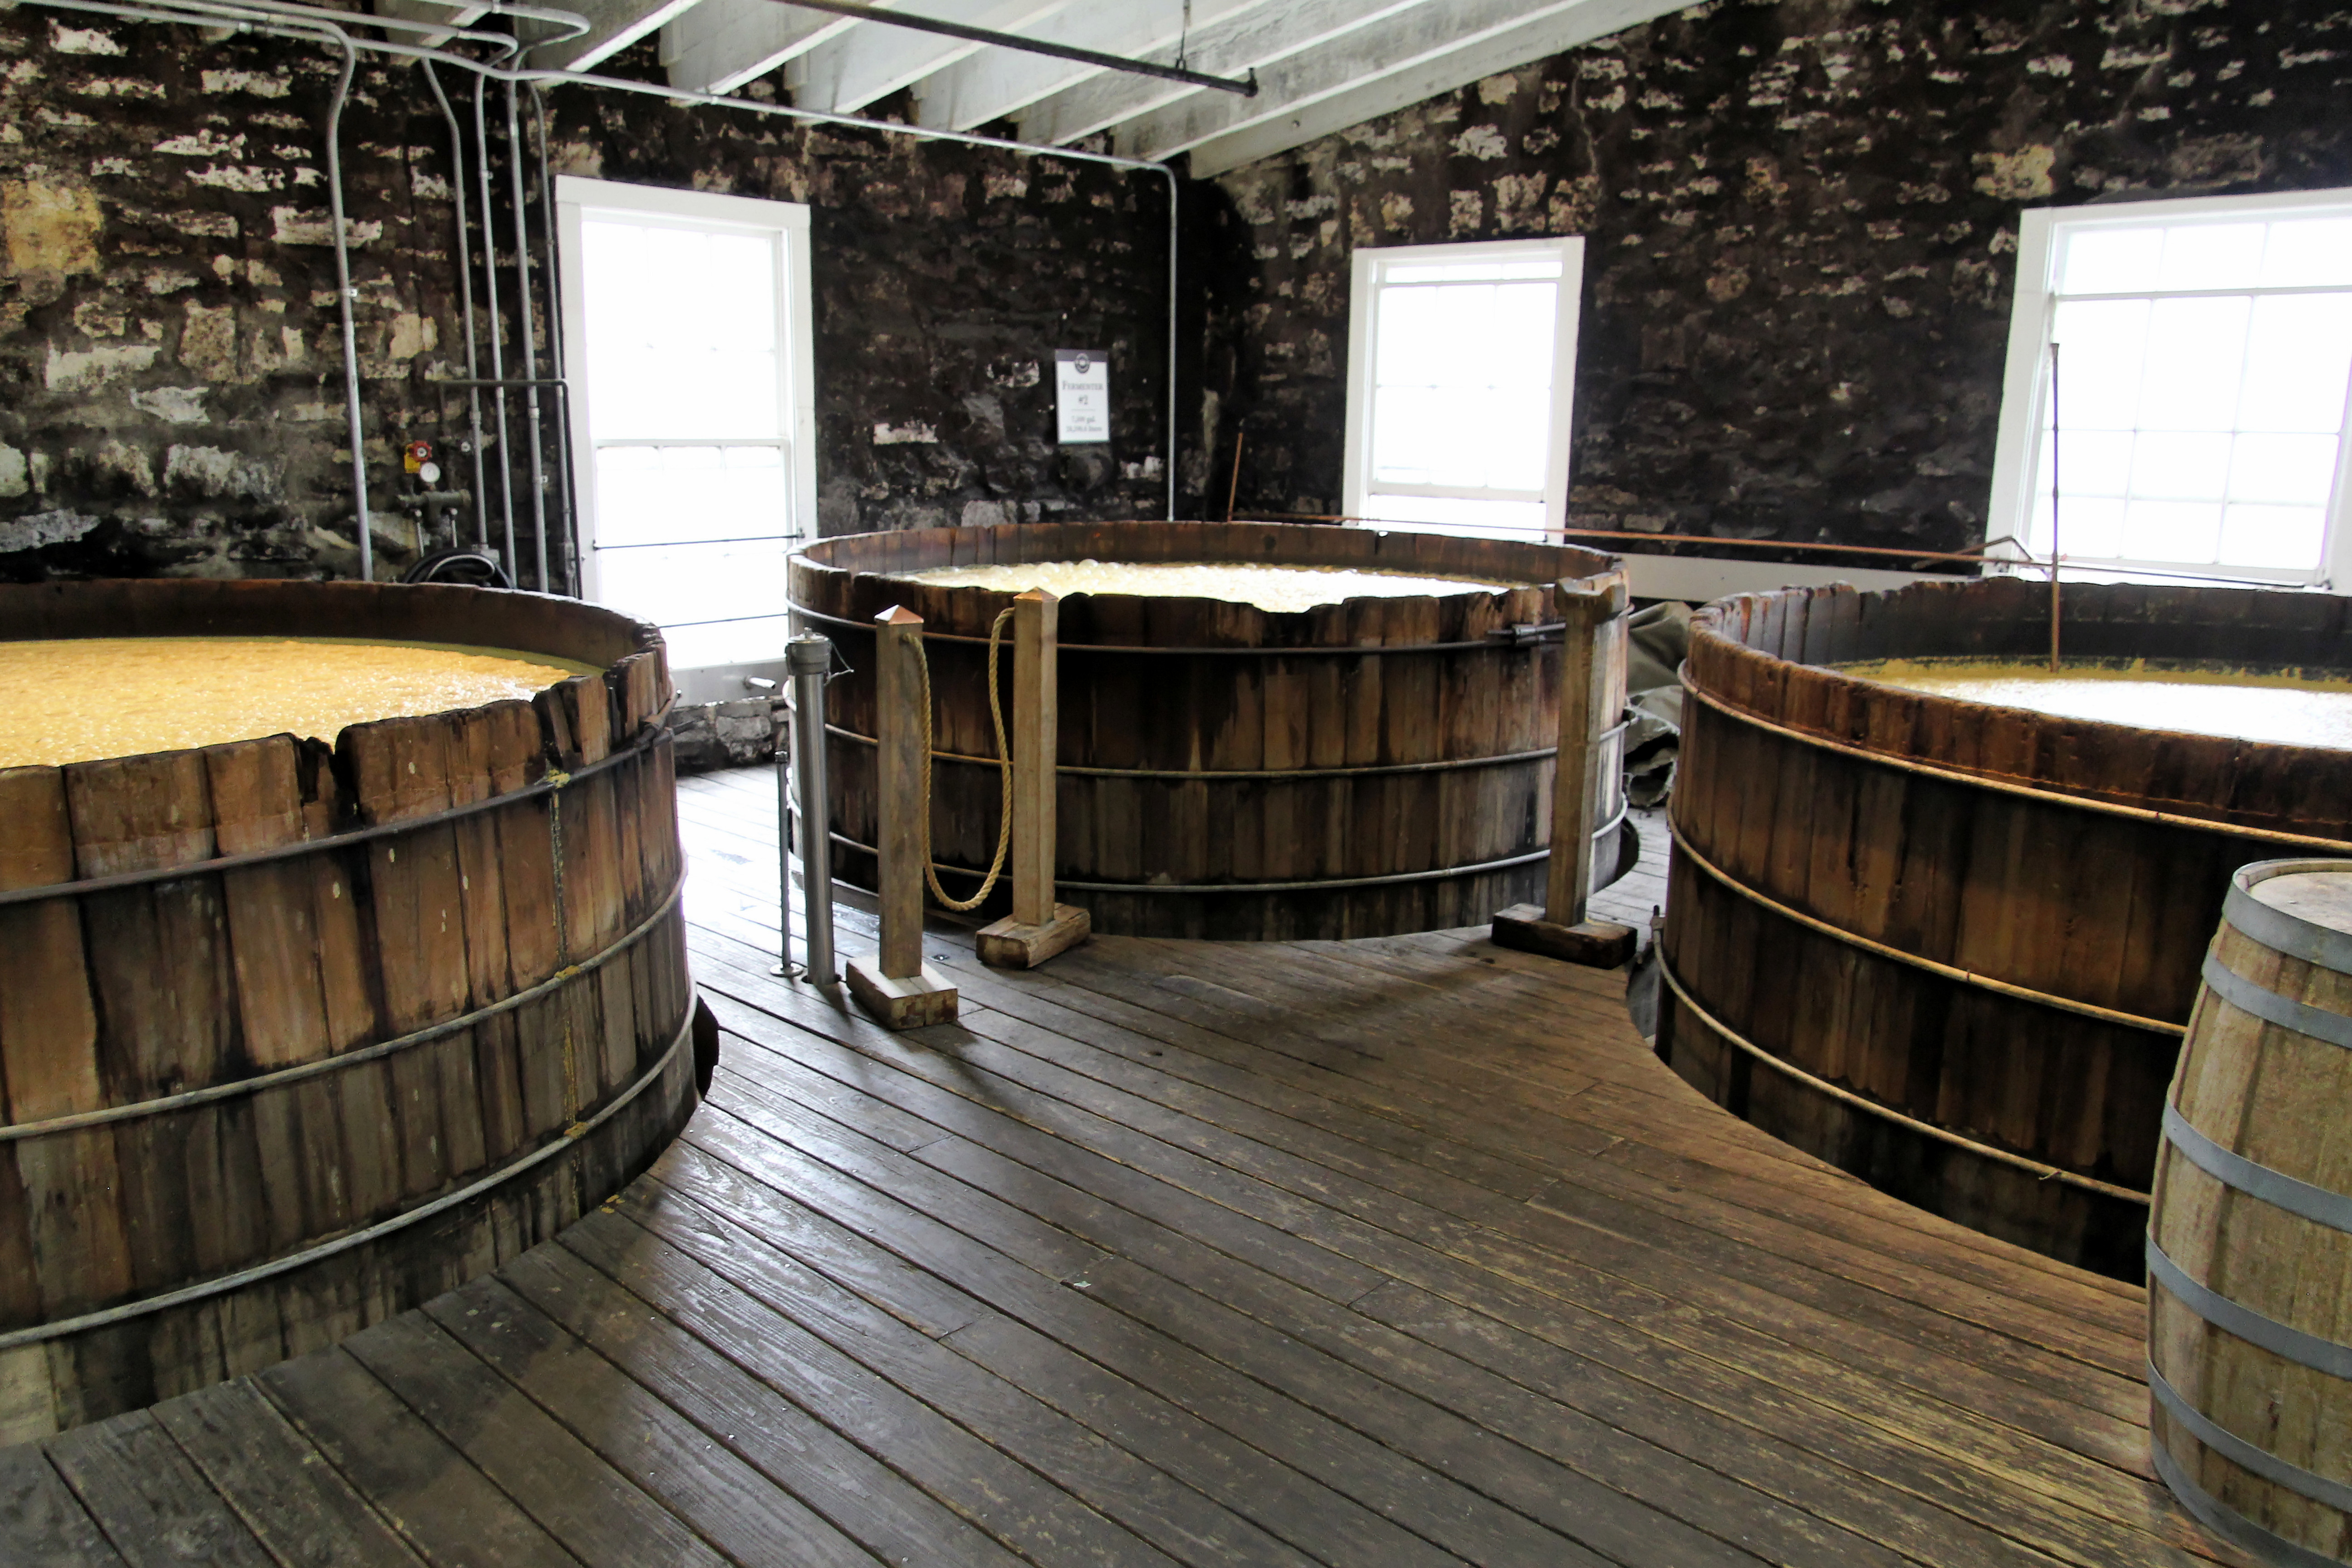 Woodford Reserve fermentation tanks